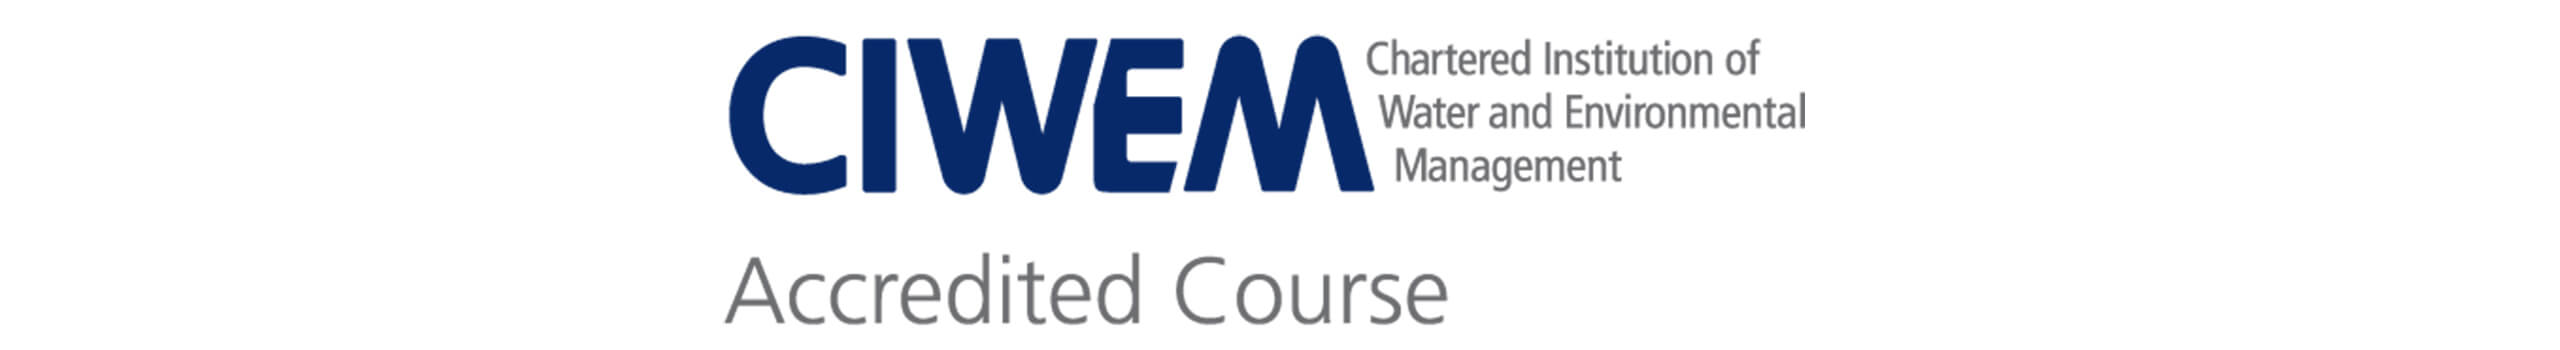 CIWEM Chartered Institution of Water and Environmental Management logo